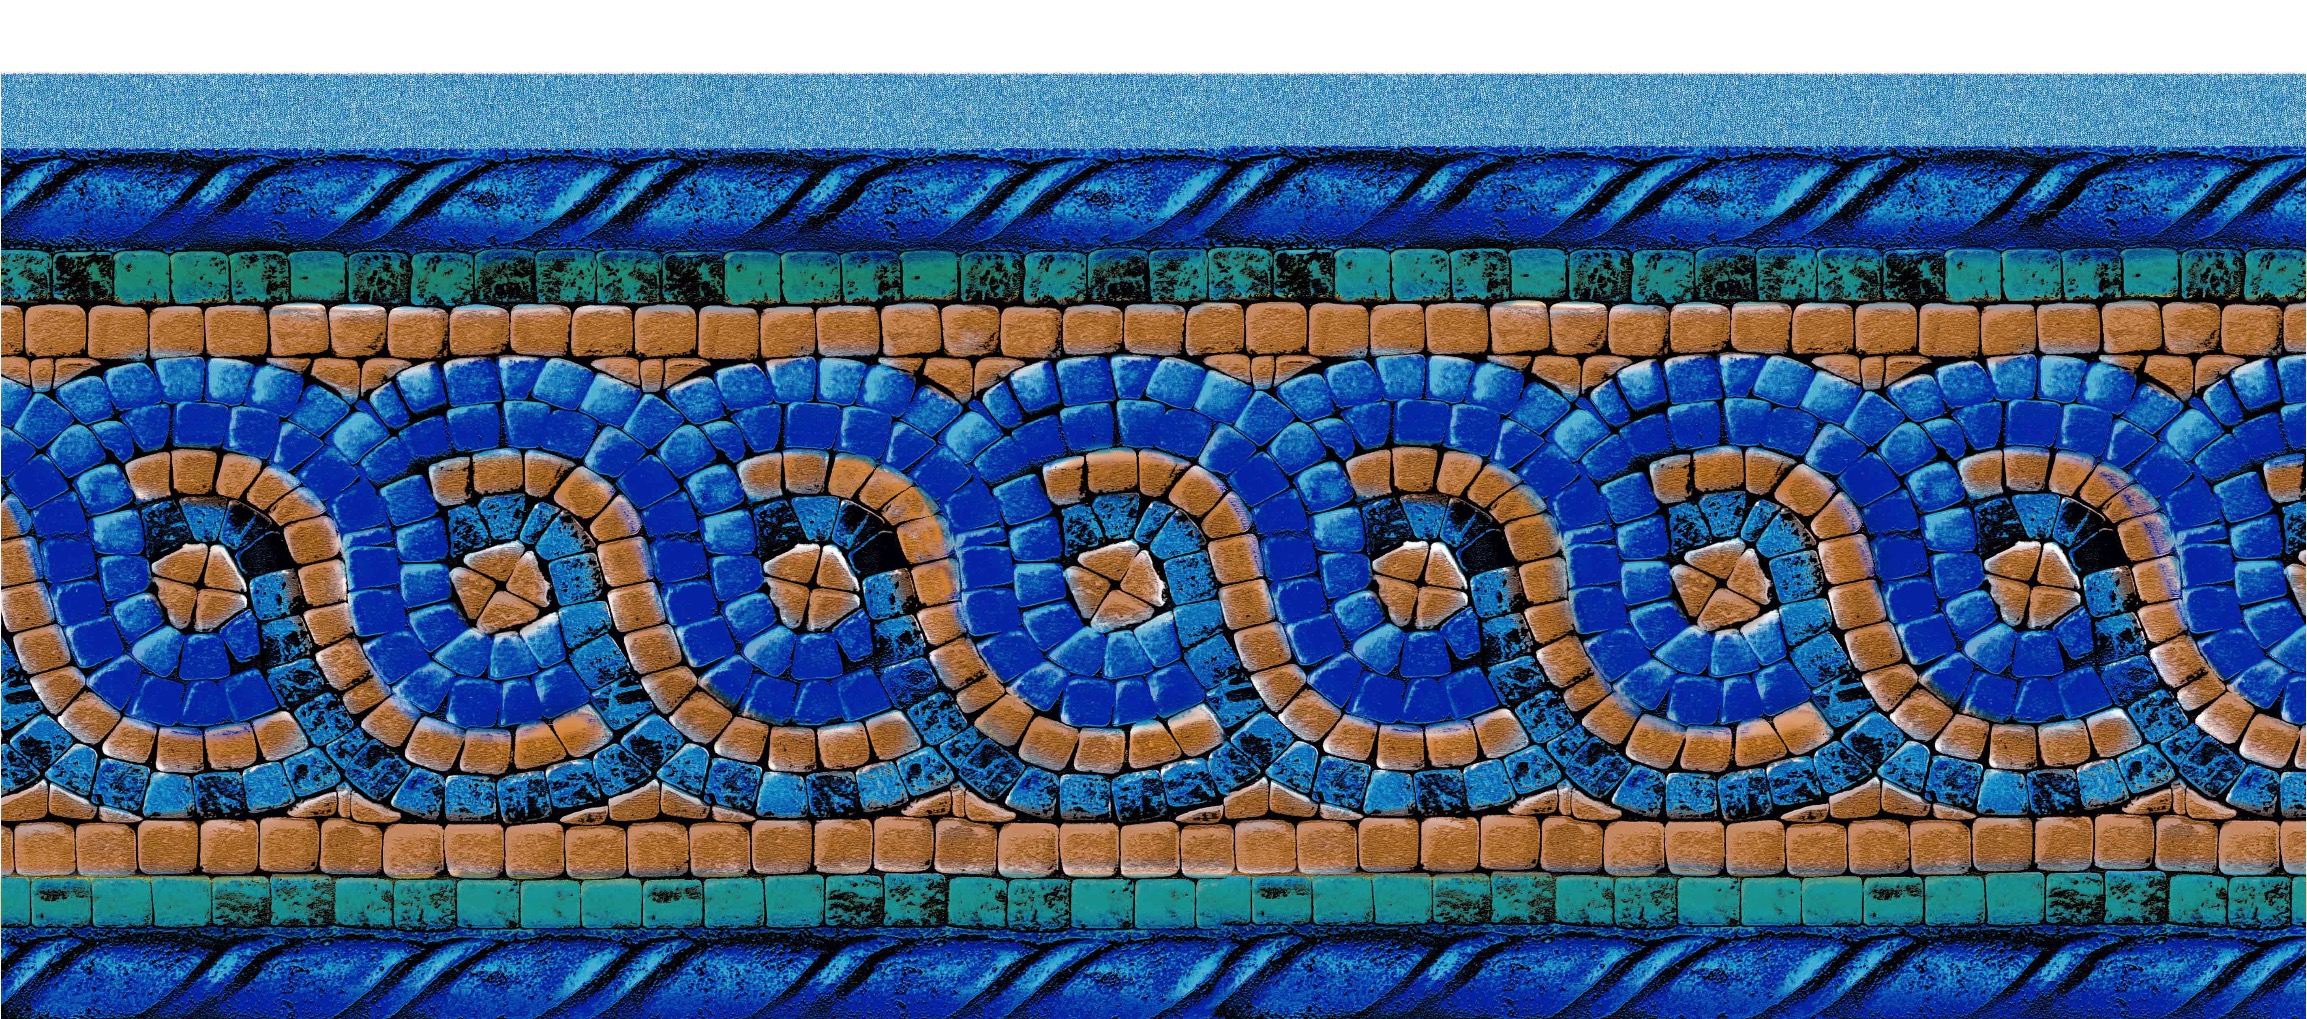 Close-up of Mosaic Tile Liner